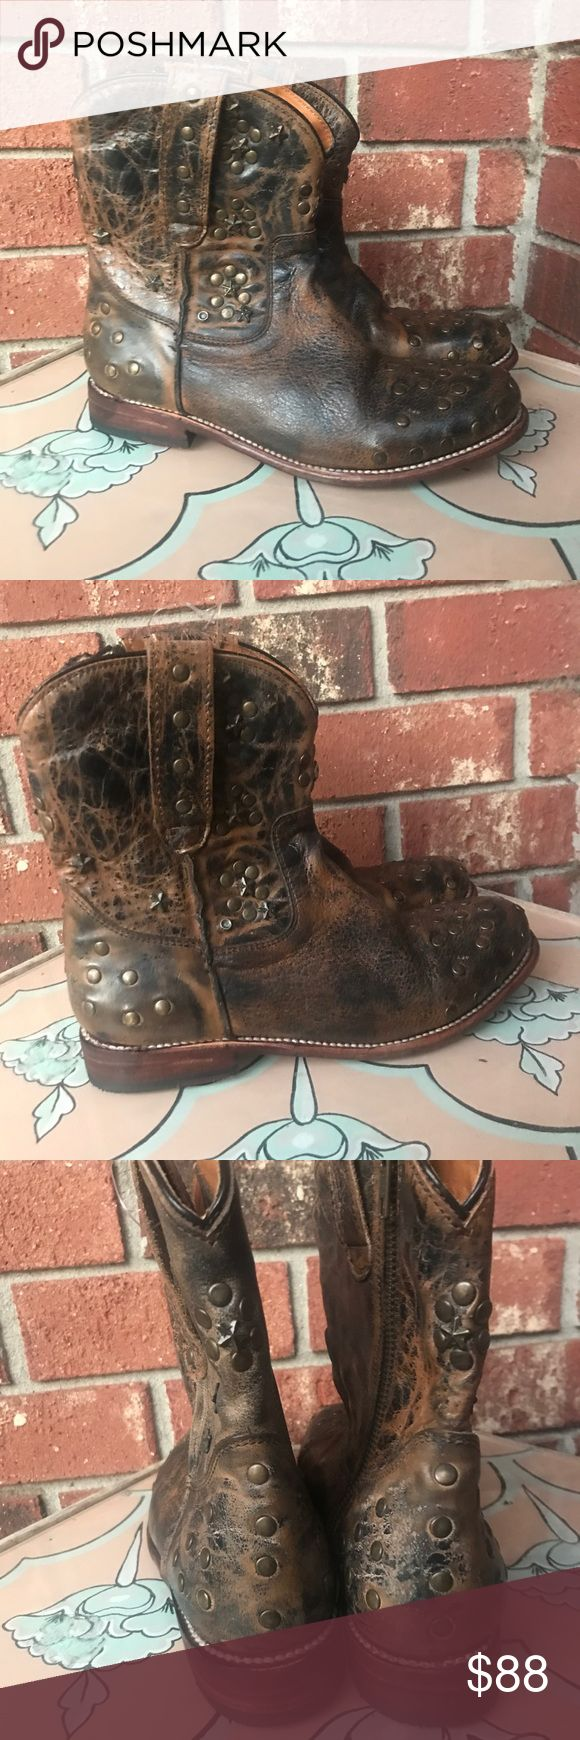 BED STU Studded Short Cowboy Boots New without box, leather. Bed Stu Shoes Ankle Boots & Booties